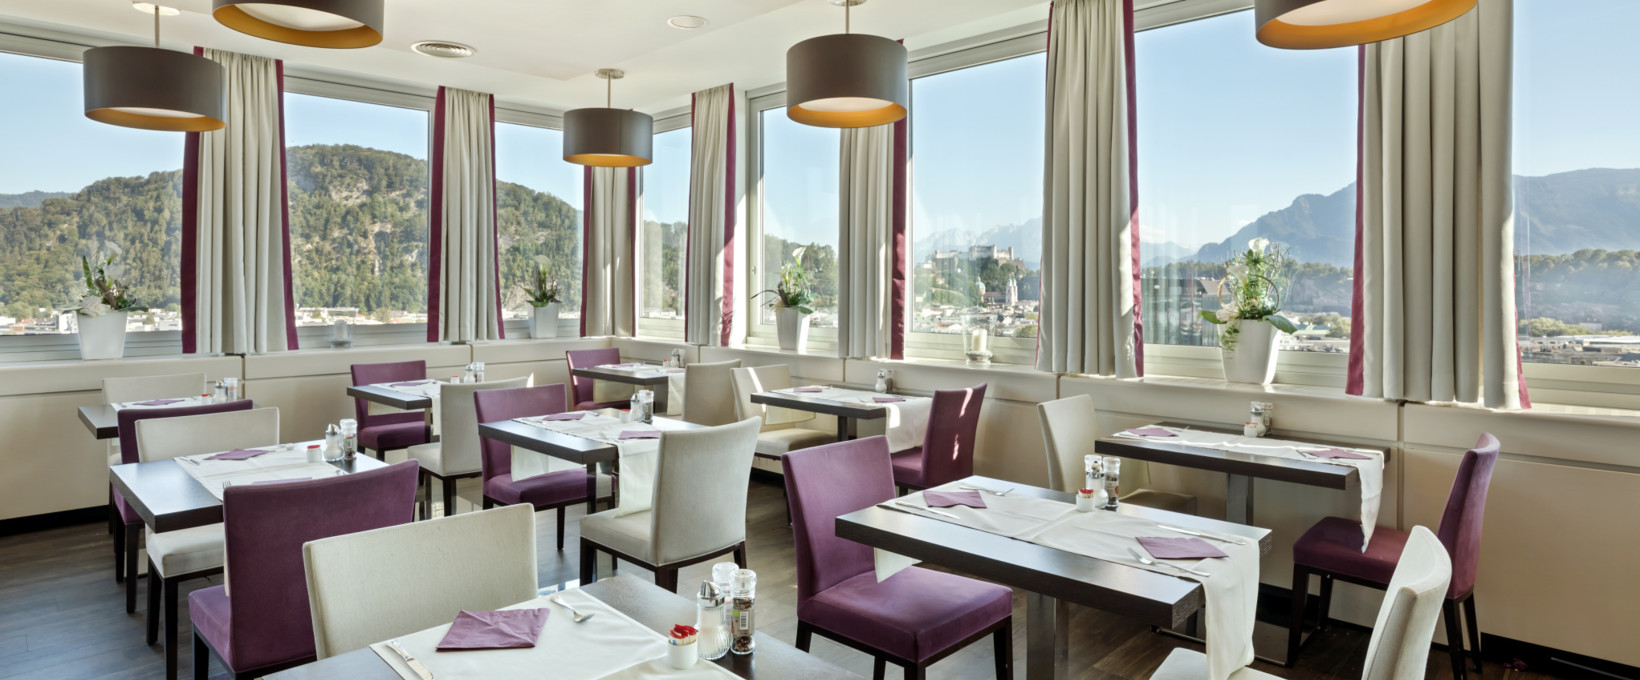 Restaurant with a view | Hotel Europa Salzburg